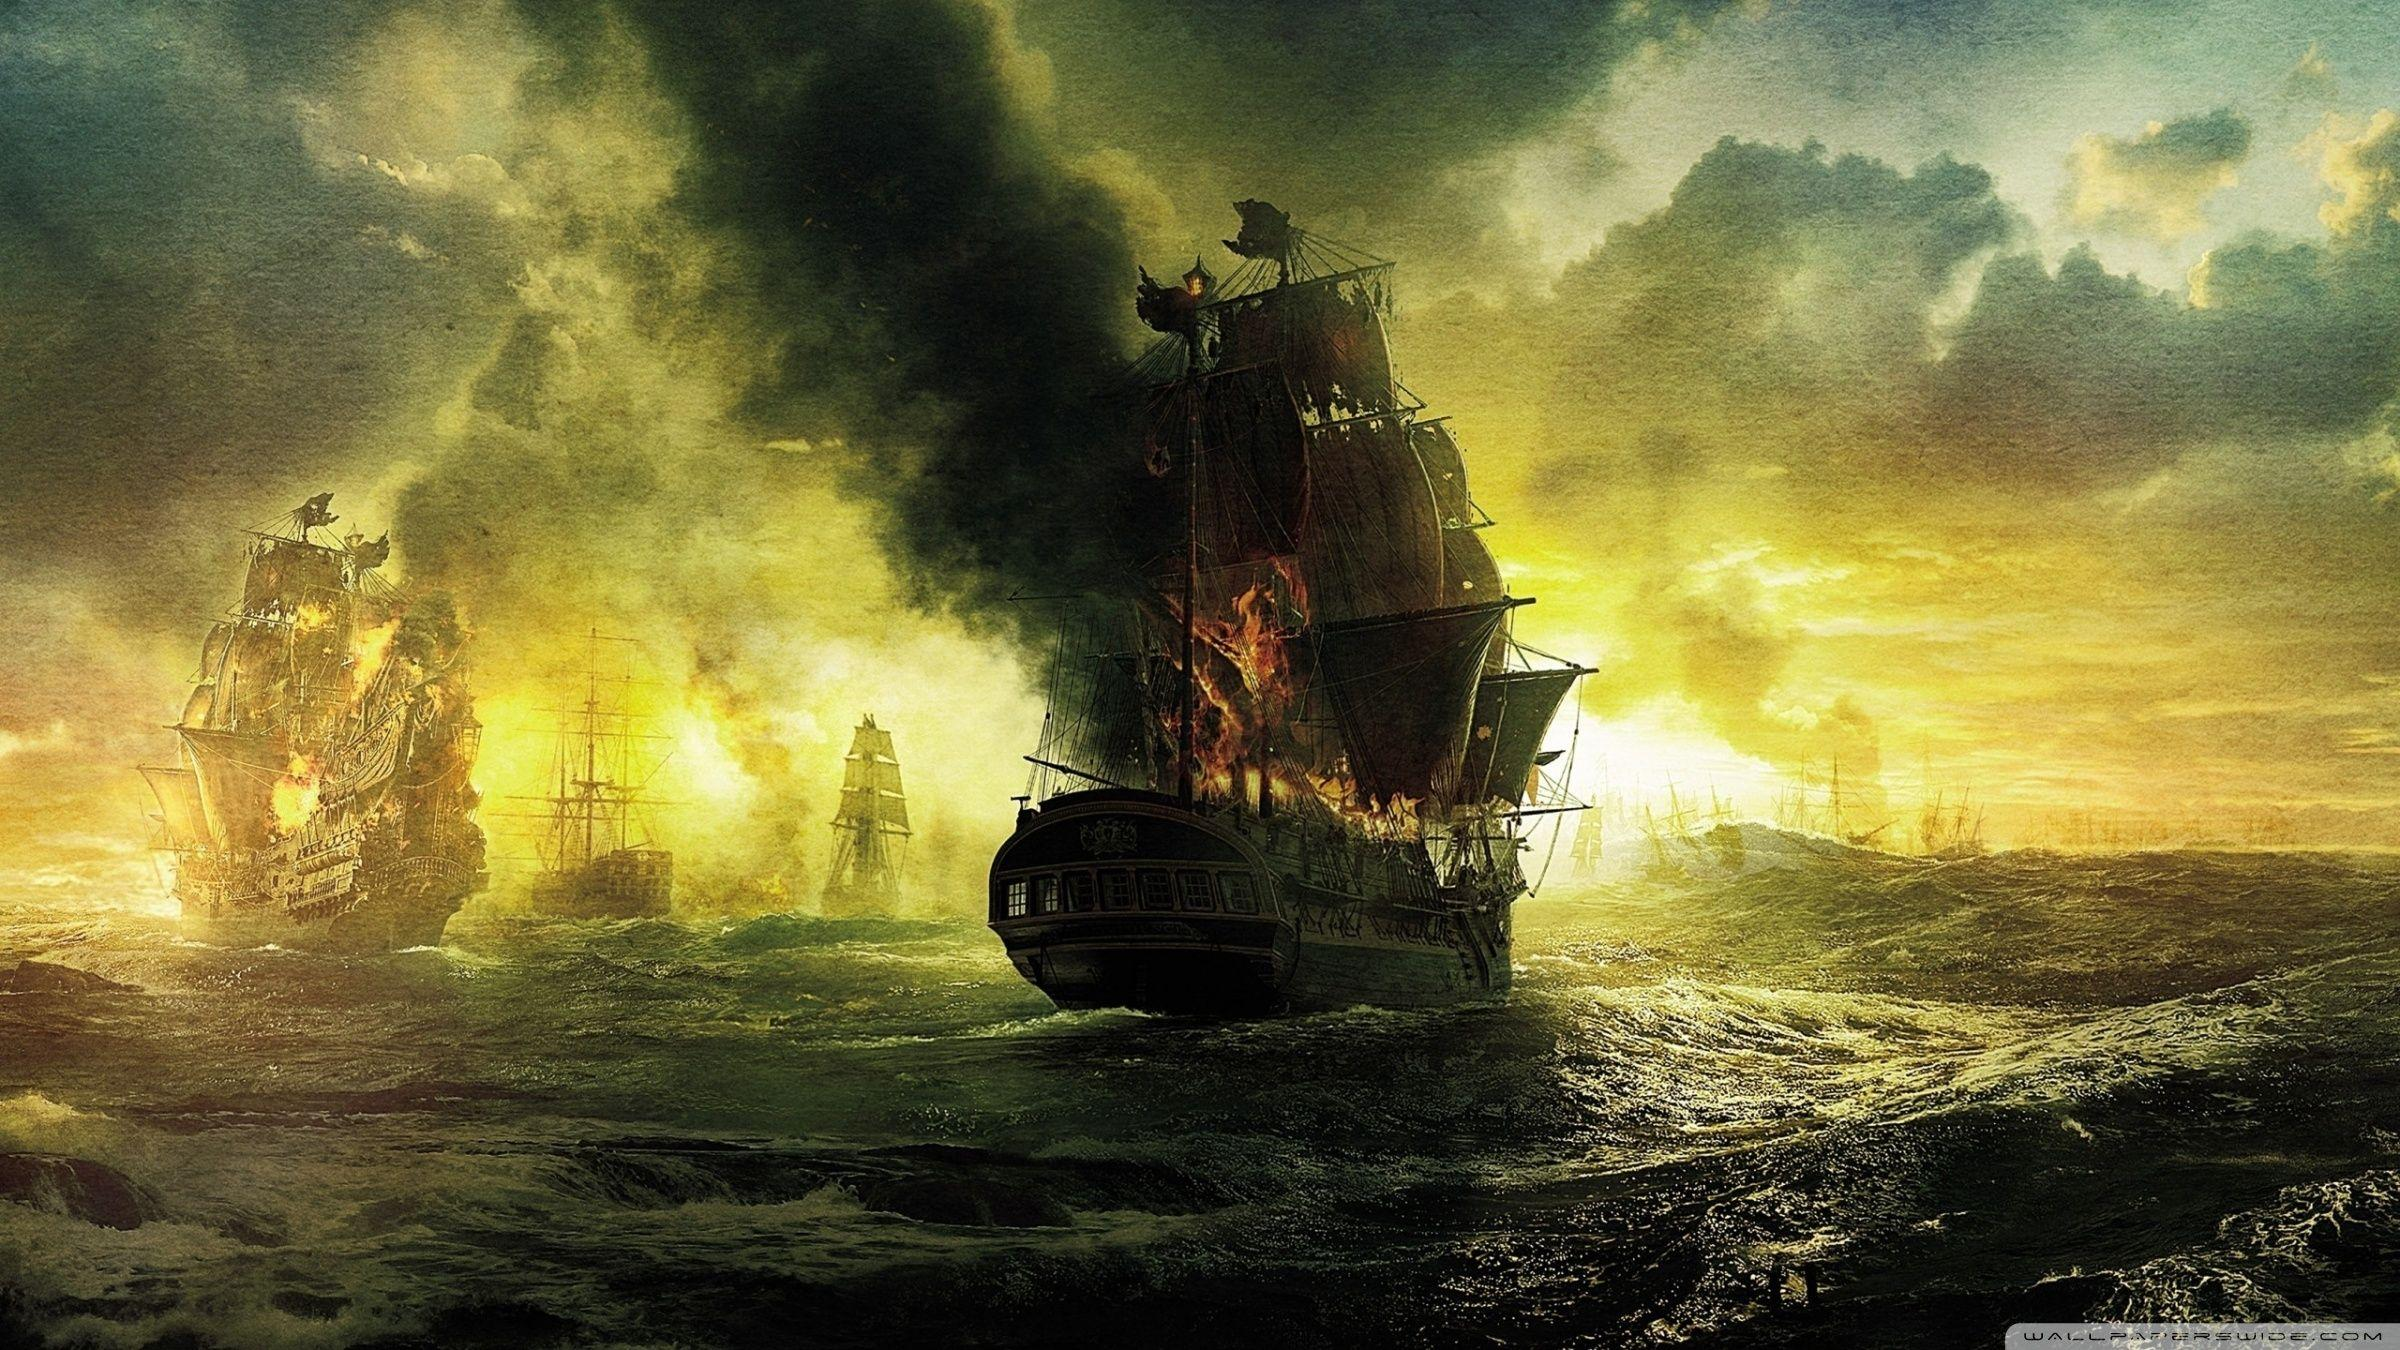 2011 Pirates Of The Caribbean On Stranger Tides HD desktop